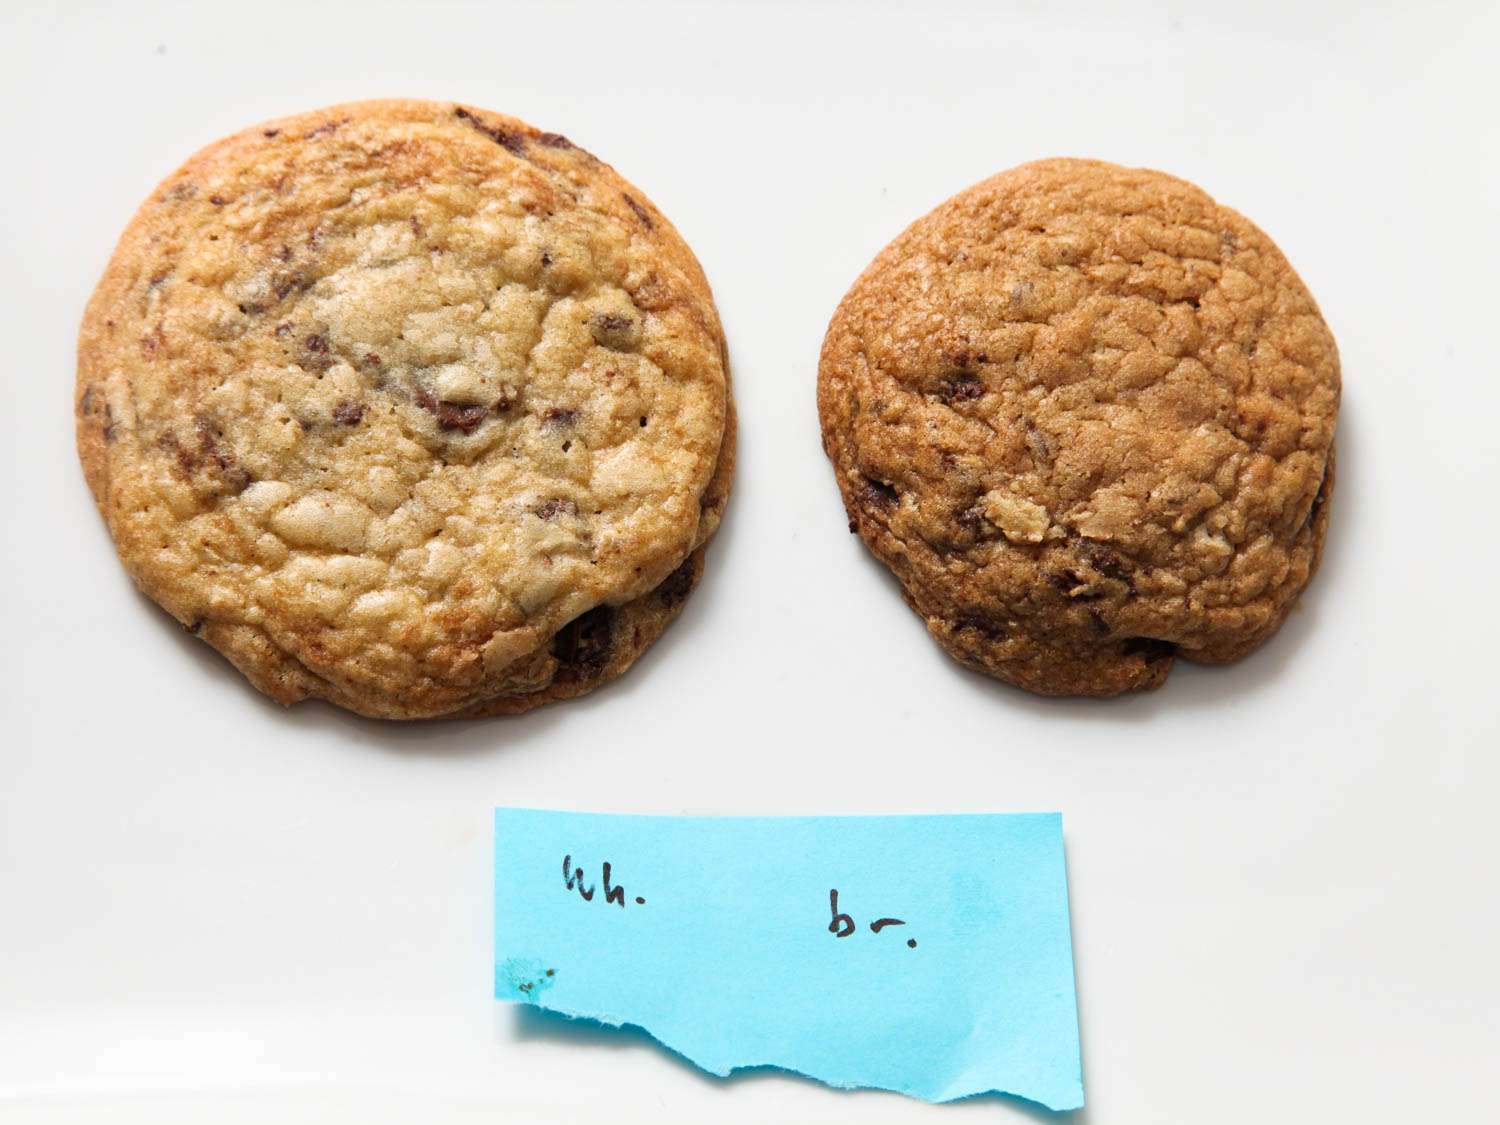 Side by side photograph showing chocolate chip cookie (left) made with all granulated sugar compared to chocolate chip cookie (right) made with all brown sugar.